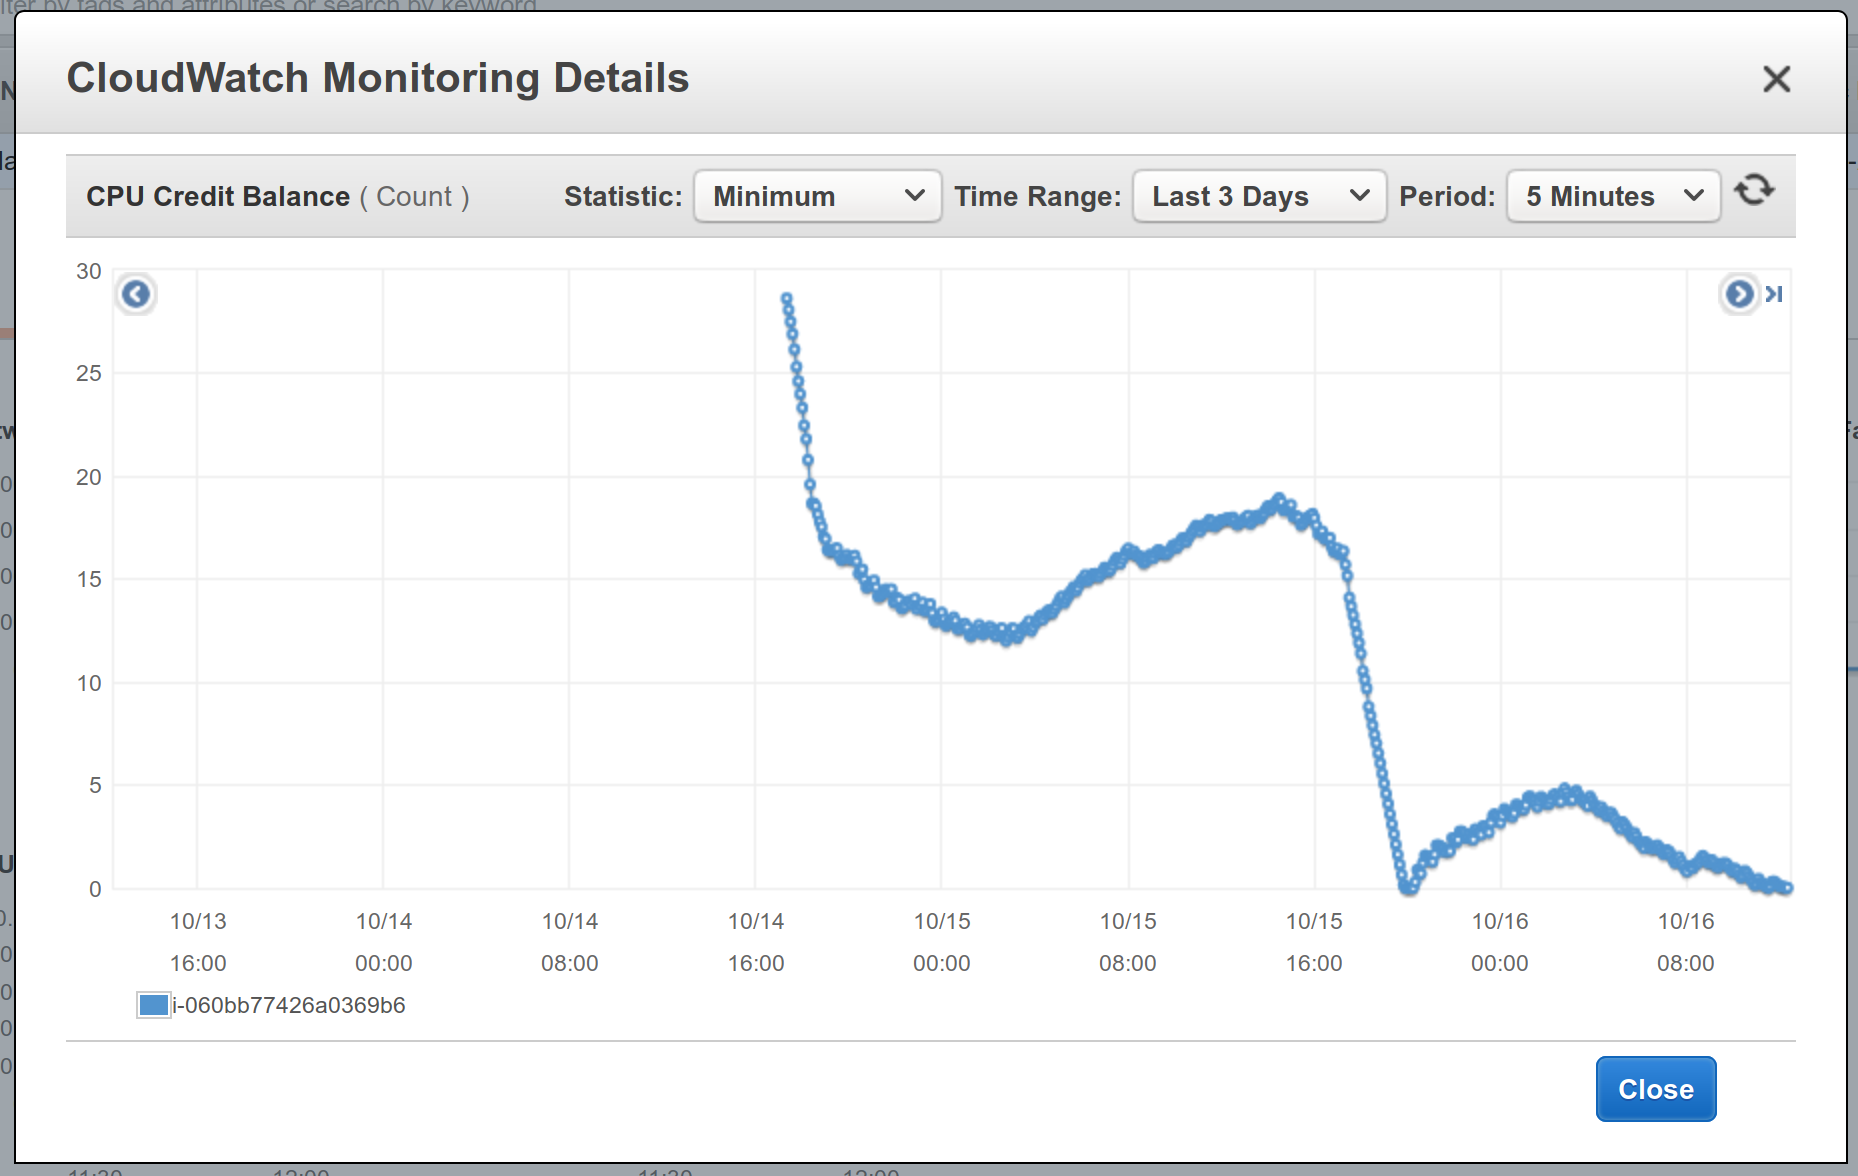 llo-cloudwatch-cpu-last-3-days.png